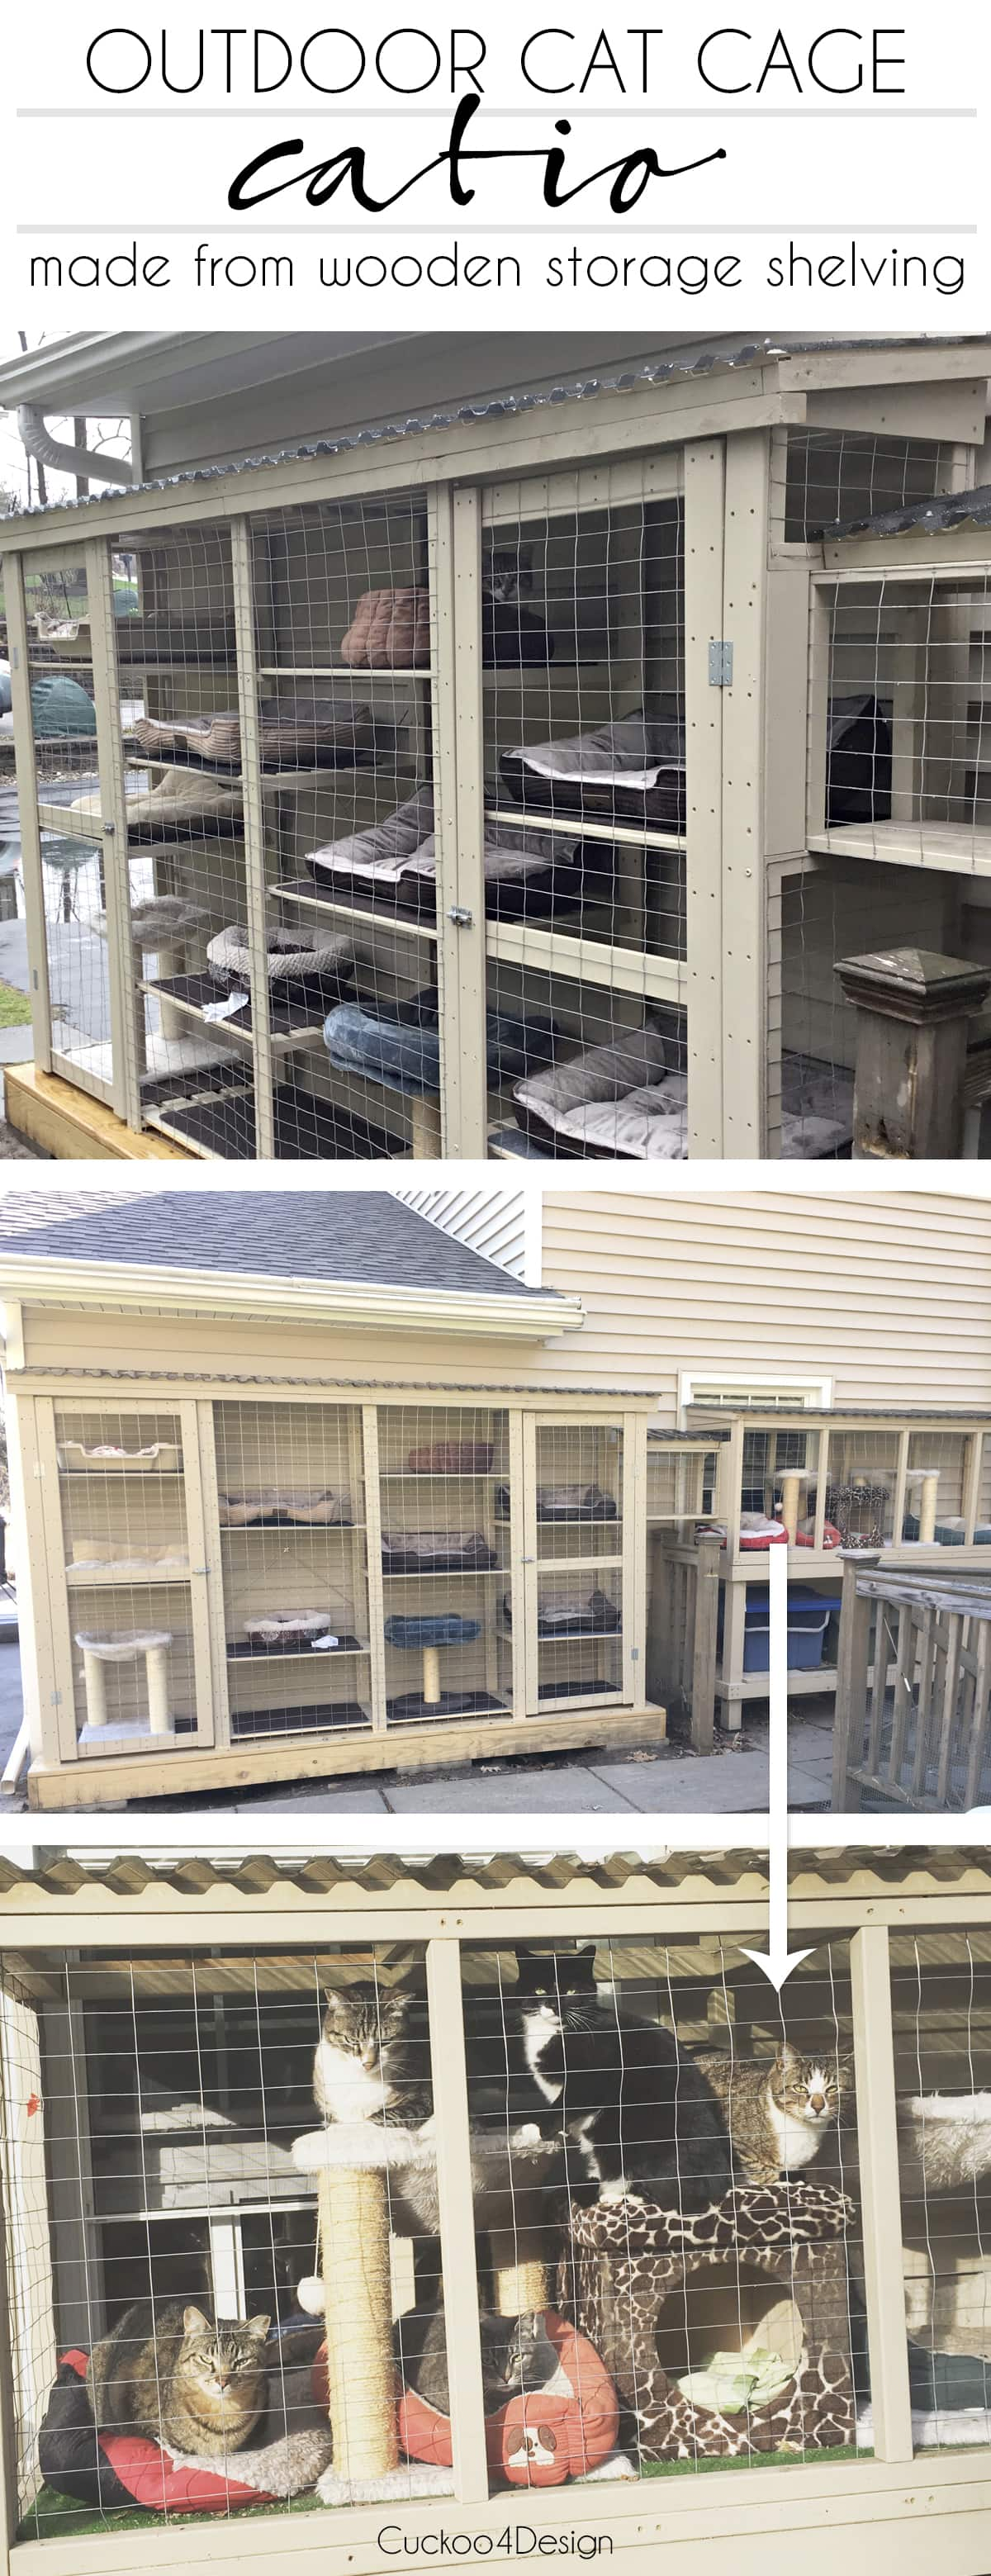 outdoor cat cage catio made from wooden shelving unit